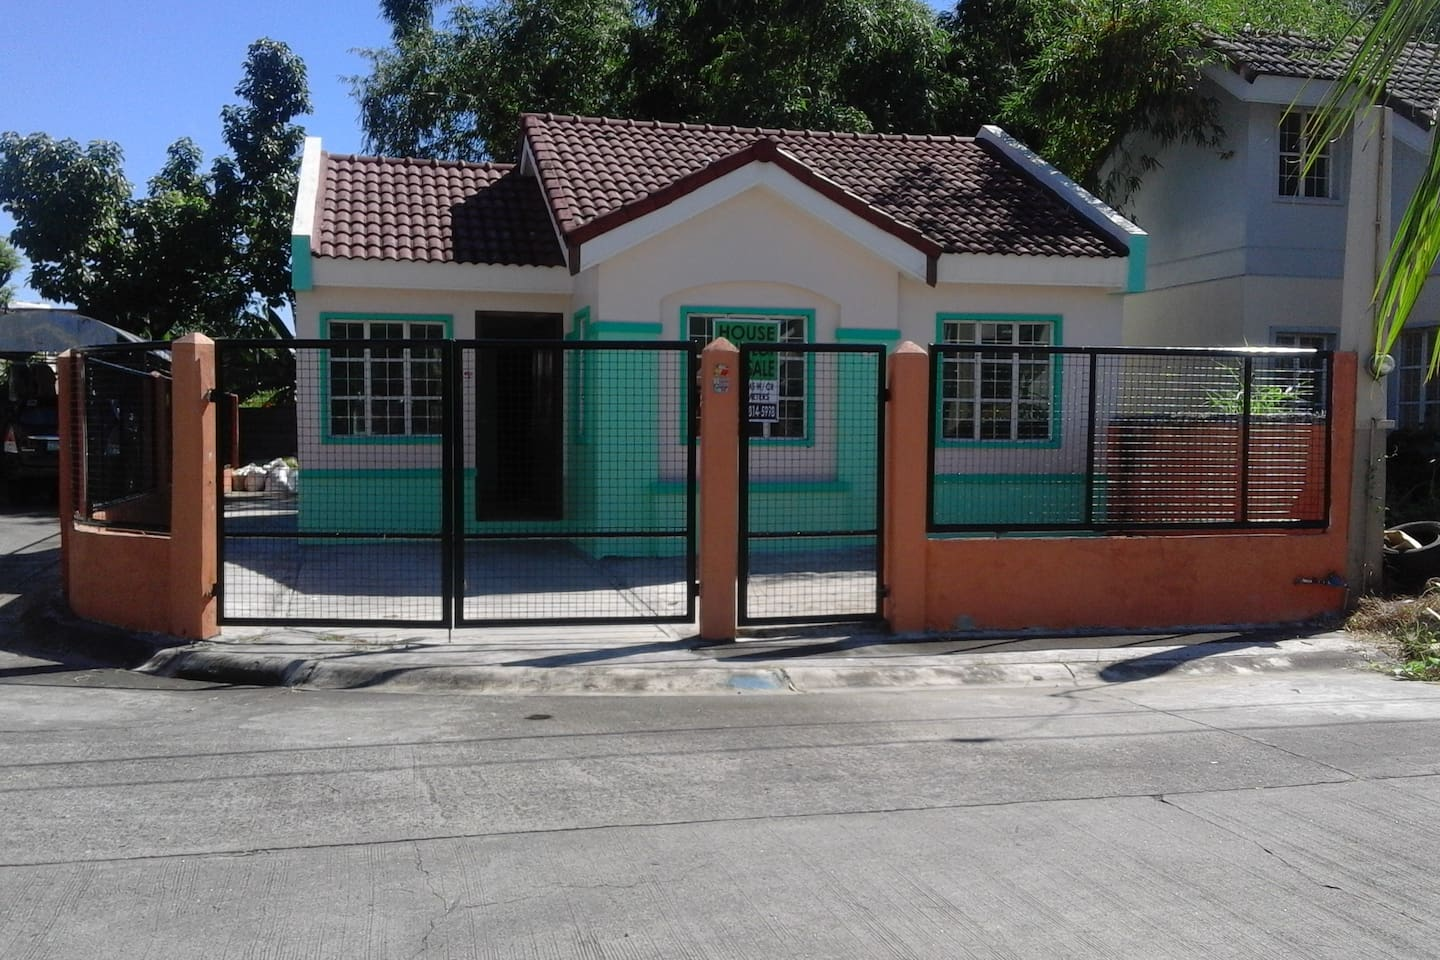 House and Lot For Sale Lot Area : 171 sq.m Floor Area : 88 sq.m Corner Lot Price : Php 4,500,000